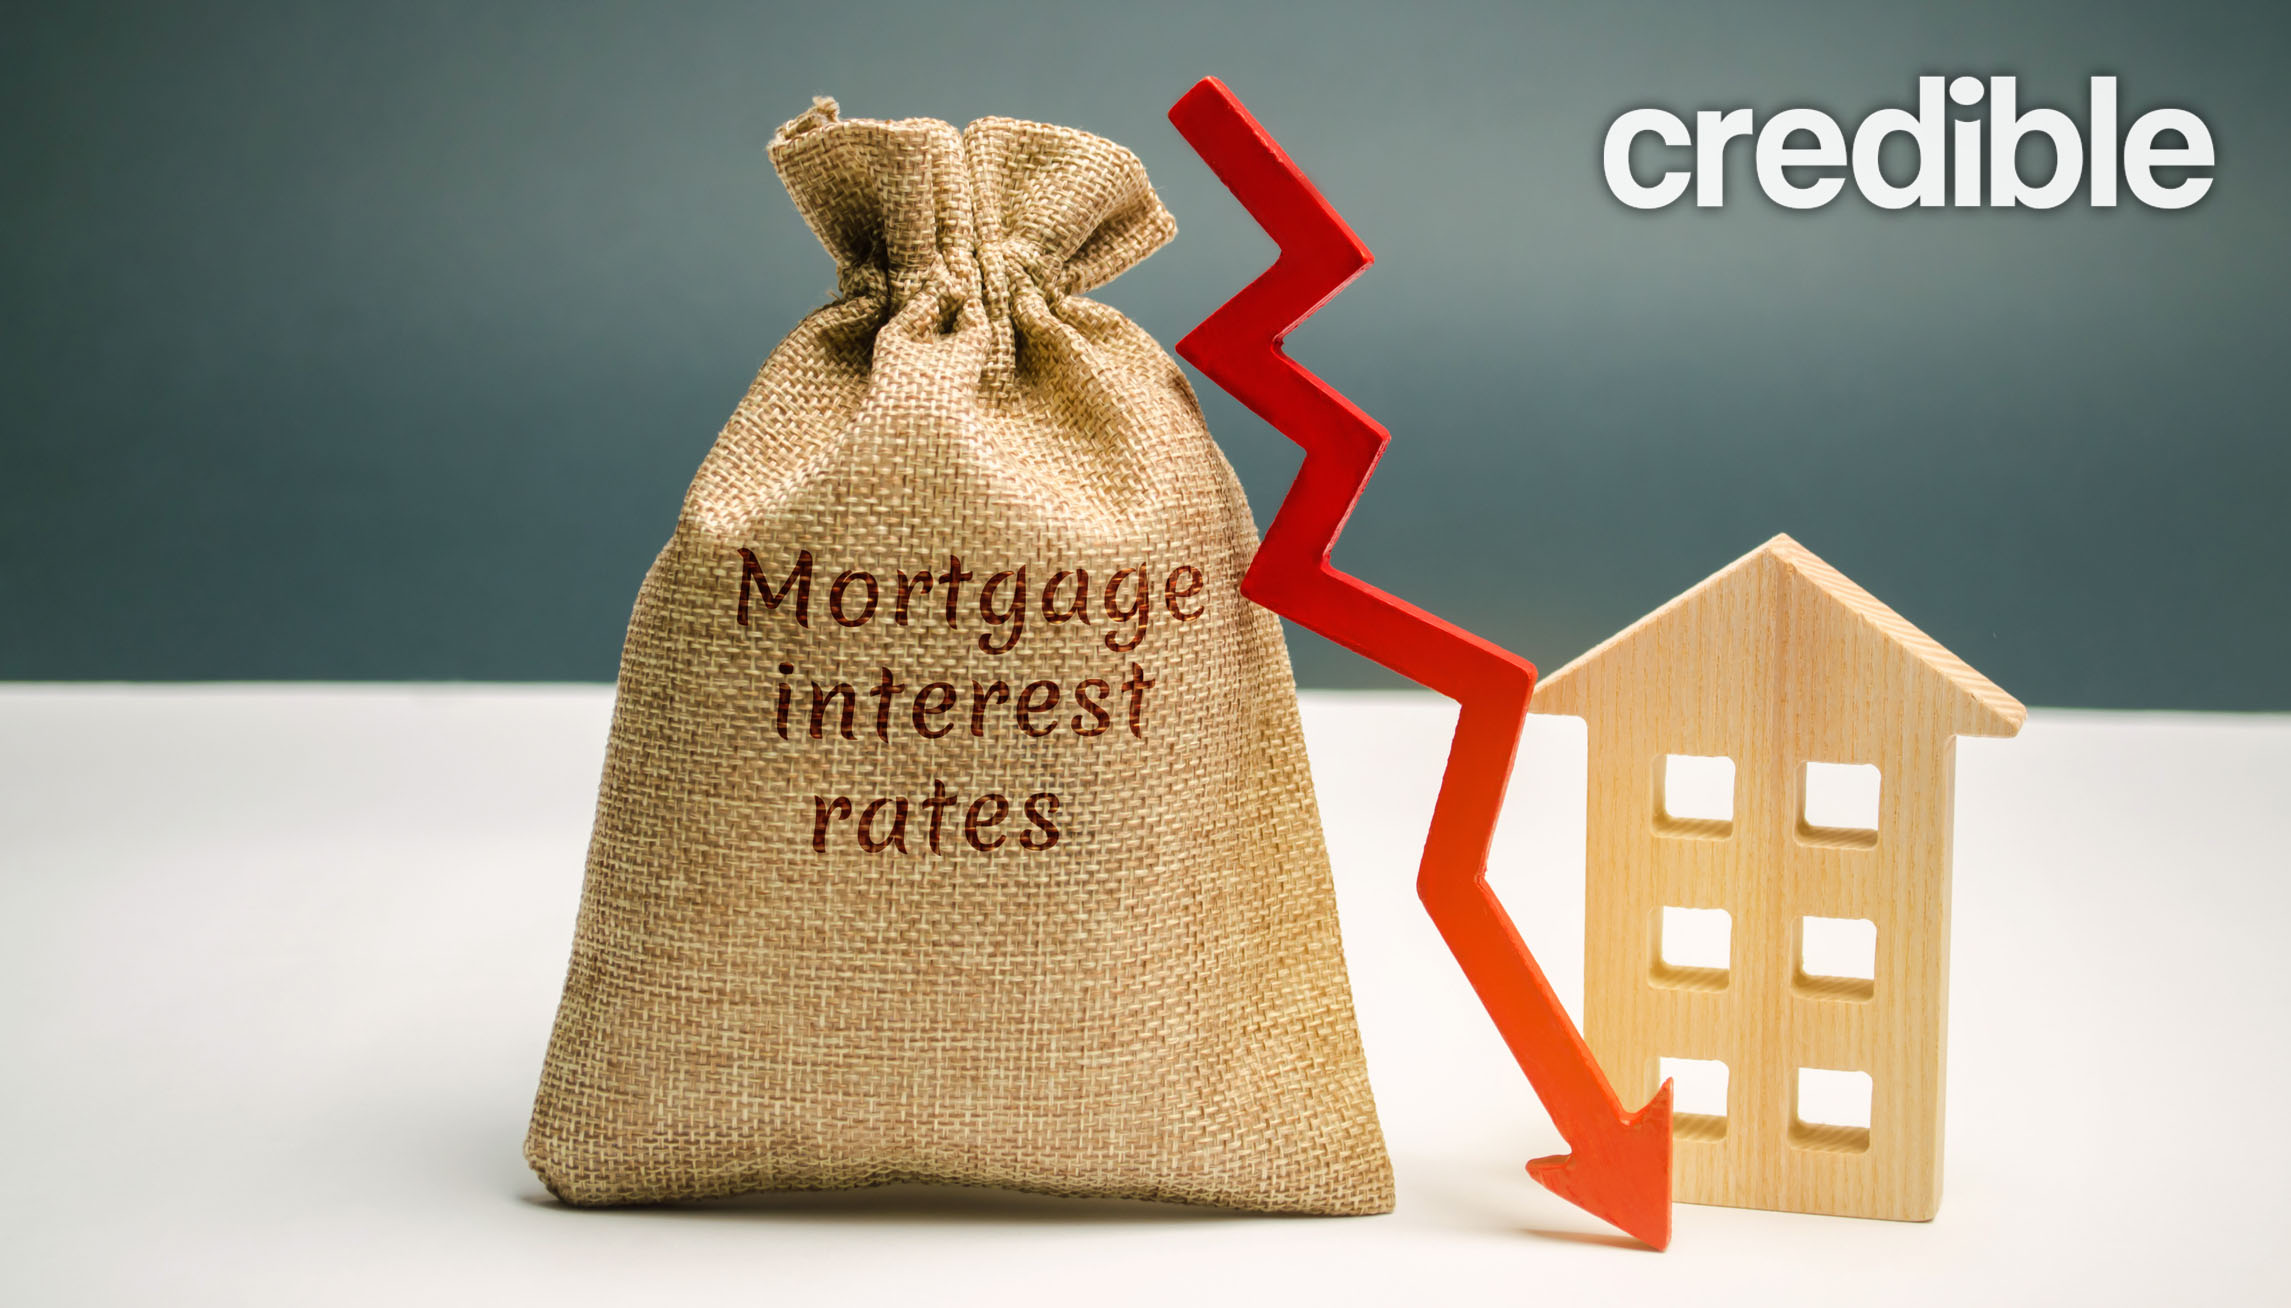 What Can We Expect with Interest Rates?